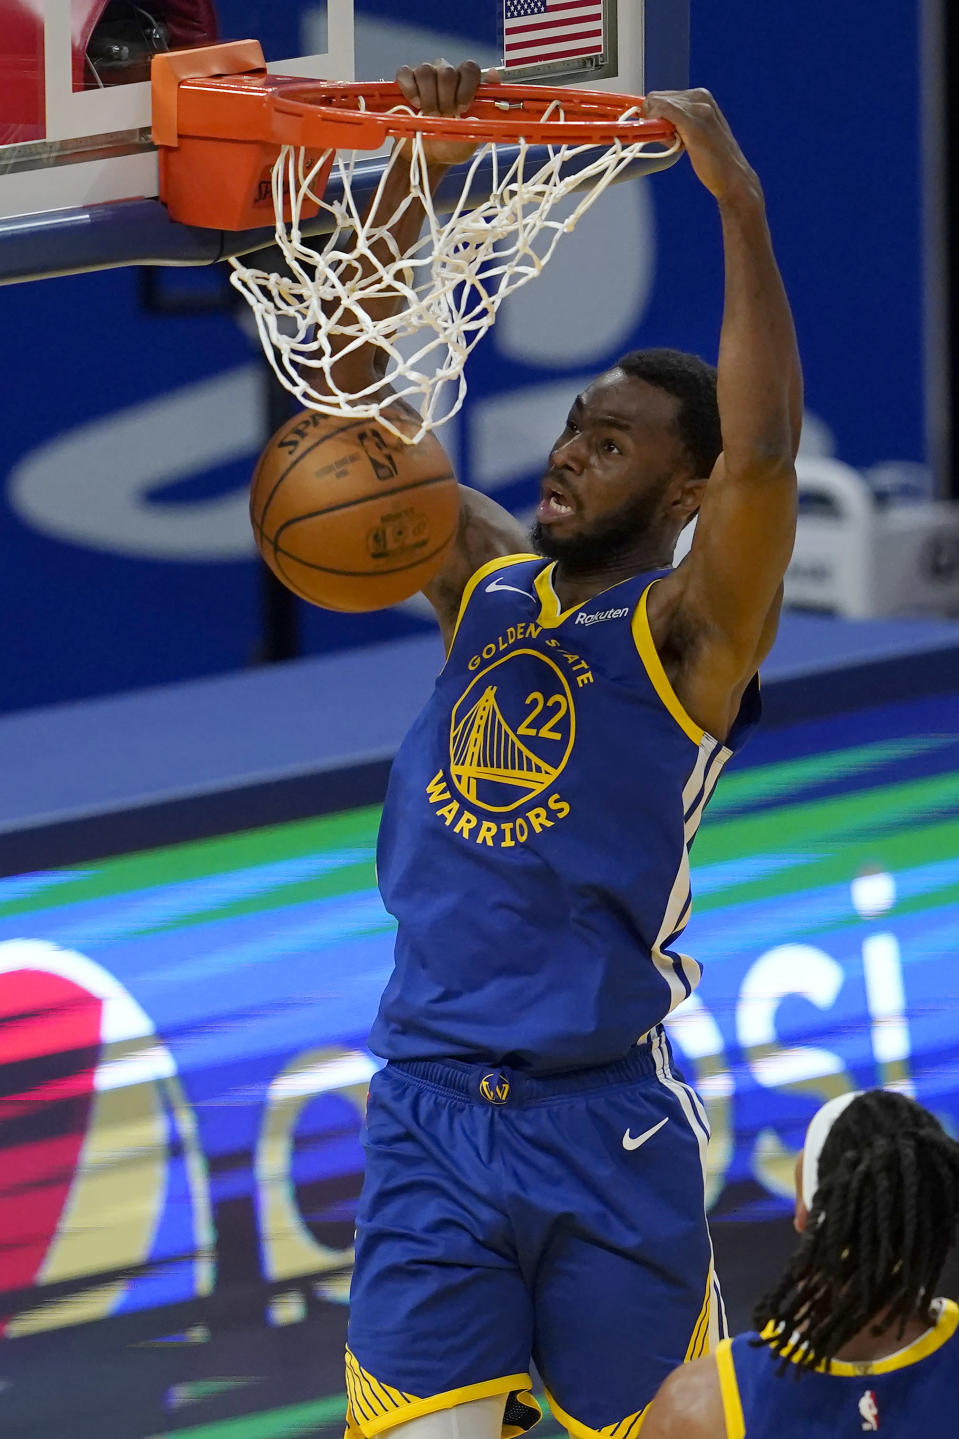 Golden State Warriors forward Andrew Wiggins (22) dunks against the Cleveland Cavaliers during the second half of an NBA basketball game in San Francisco, Monday, Feb. 15, 2021. (AP Photo/Jeff Chiu)